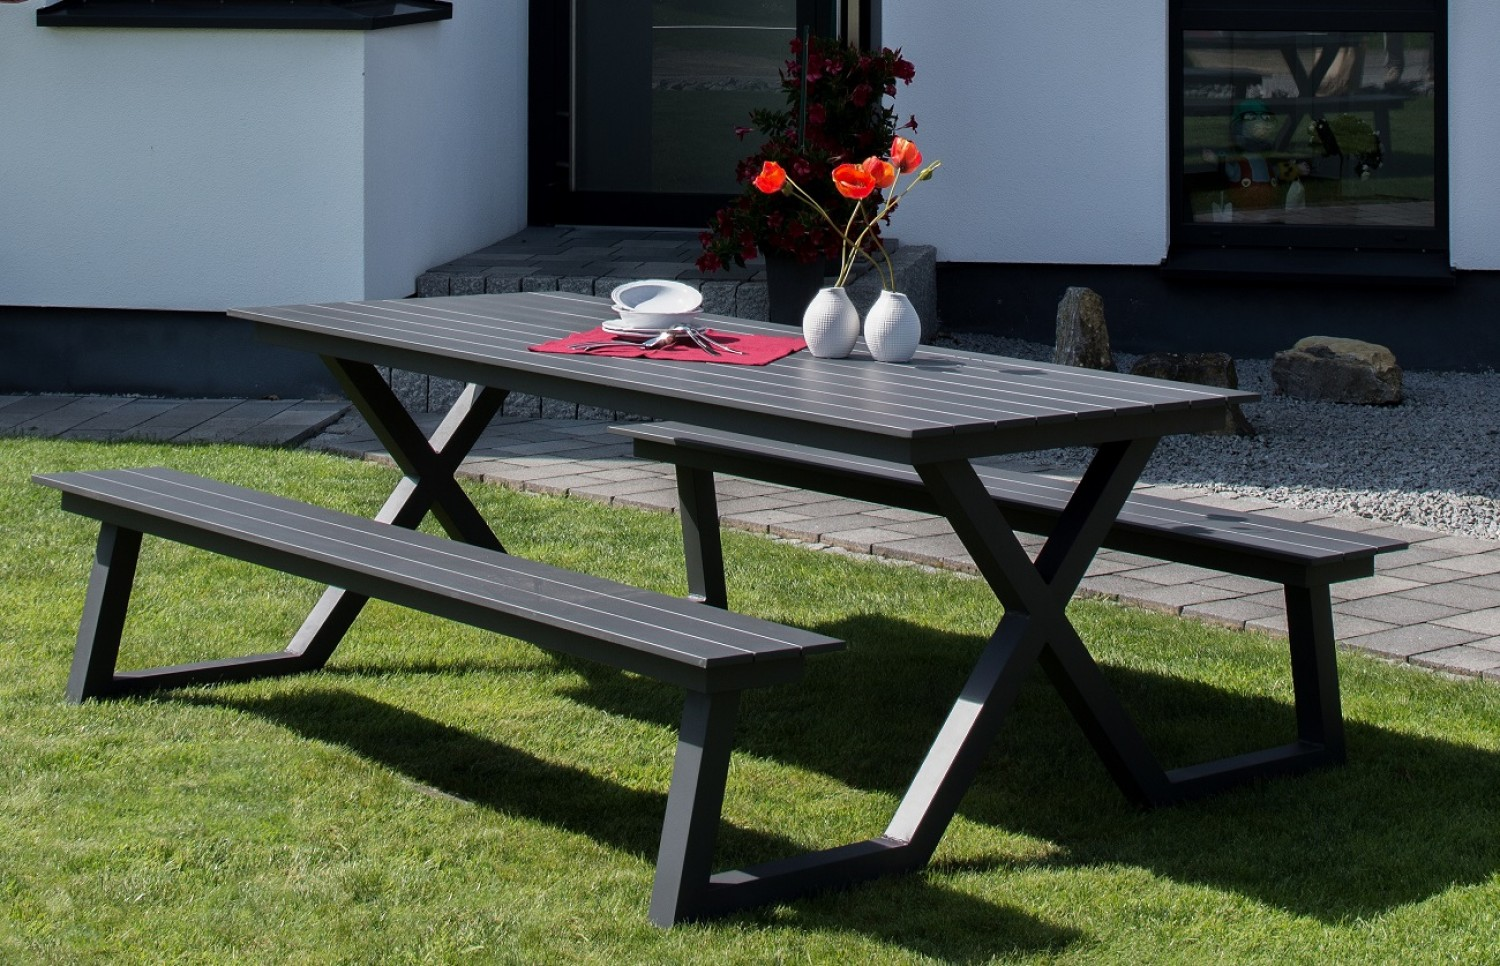 inko cebu aluminium gartenm belgruppe batavia gartenm bel onlineshop f r hochwertige gartenm be. Black Bedroom Furniture Sets. Home Design Ideas